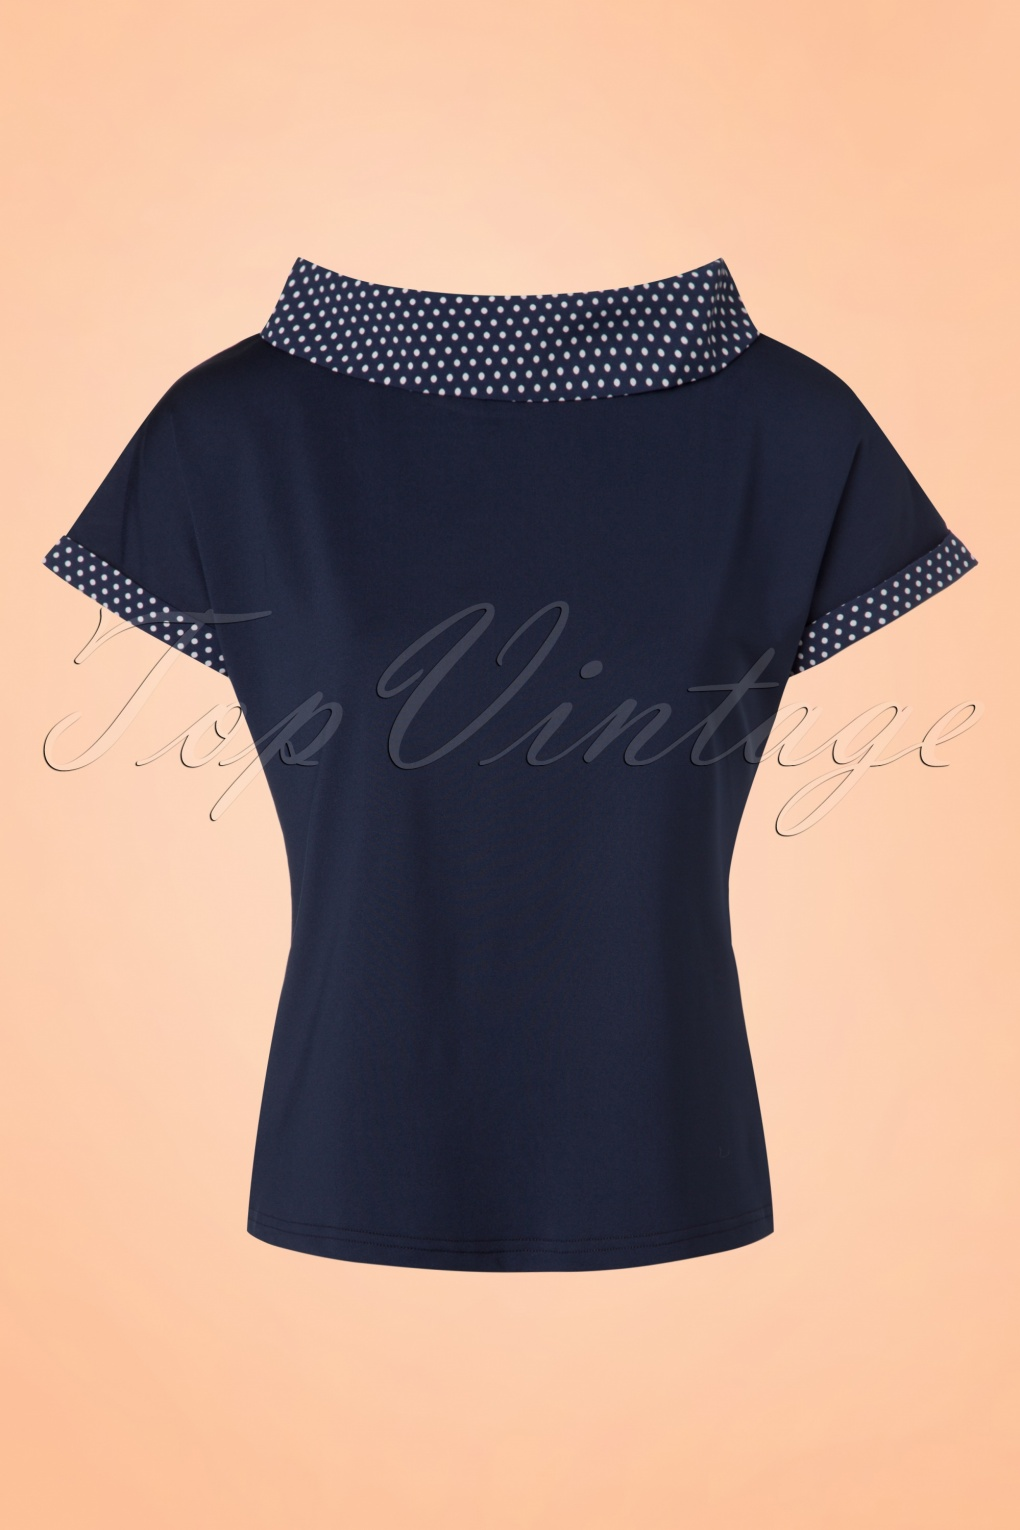 Vintage & Retro Shirts, Halter Tops, Blouses 50s Alicia Blouse in Navy £21.89 AT vintagedancer.com